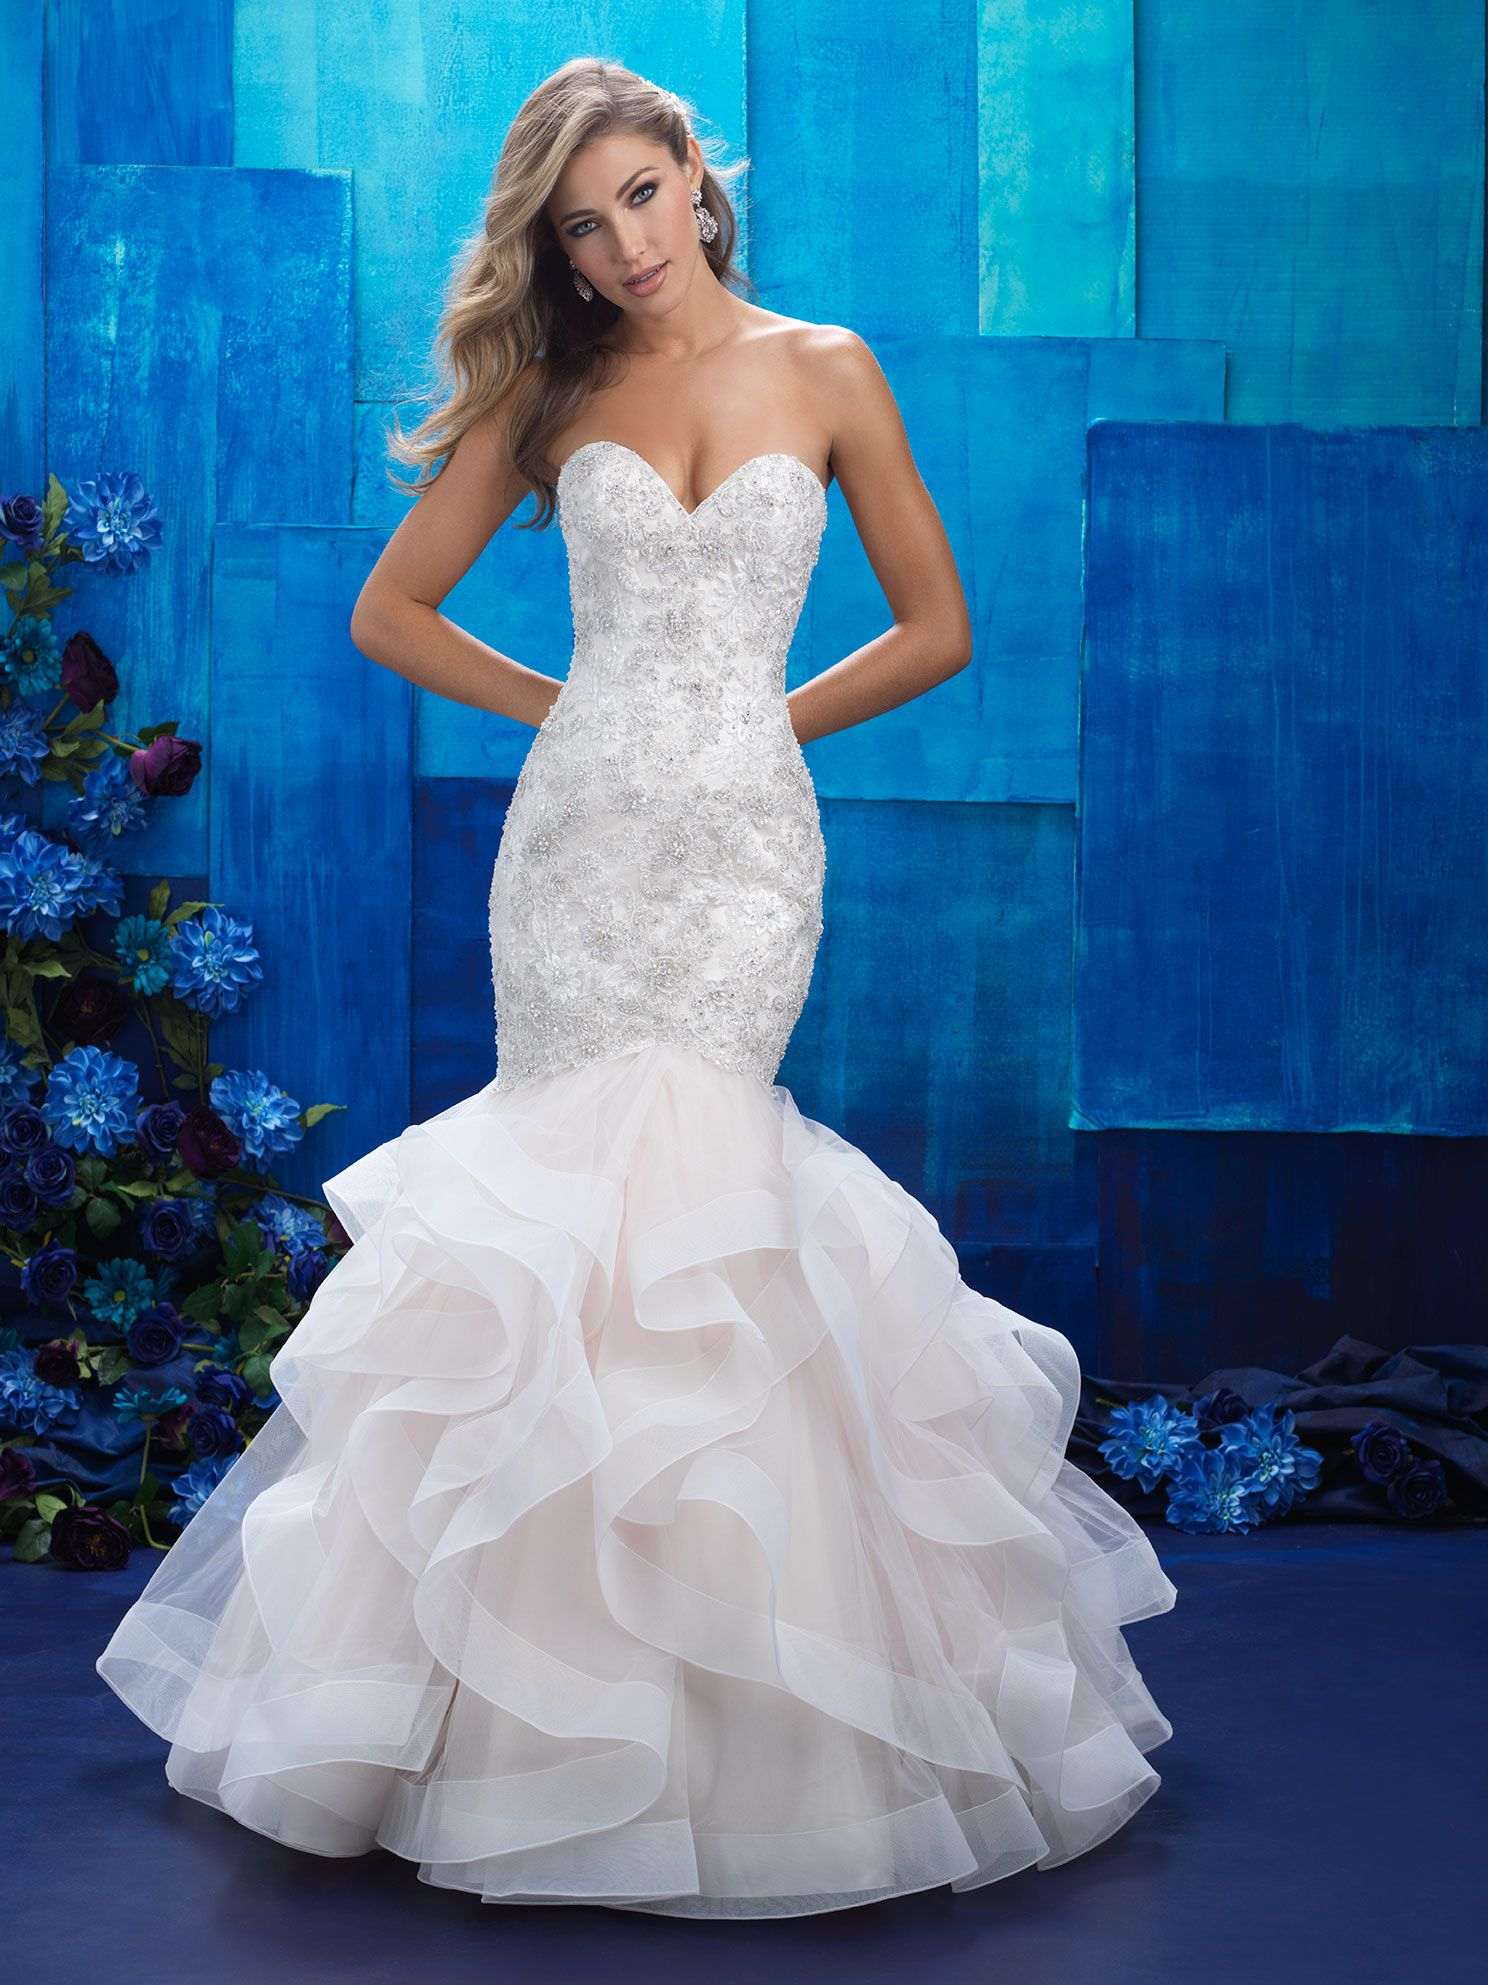 Latest Bridal Dresses With Prices | Allure bridal, Champagne and Ivory